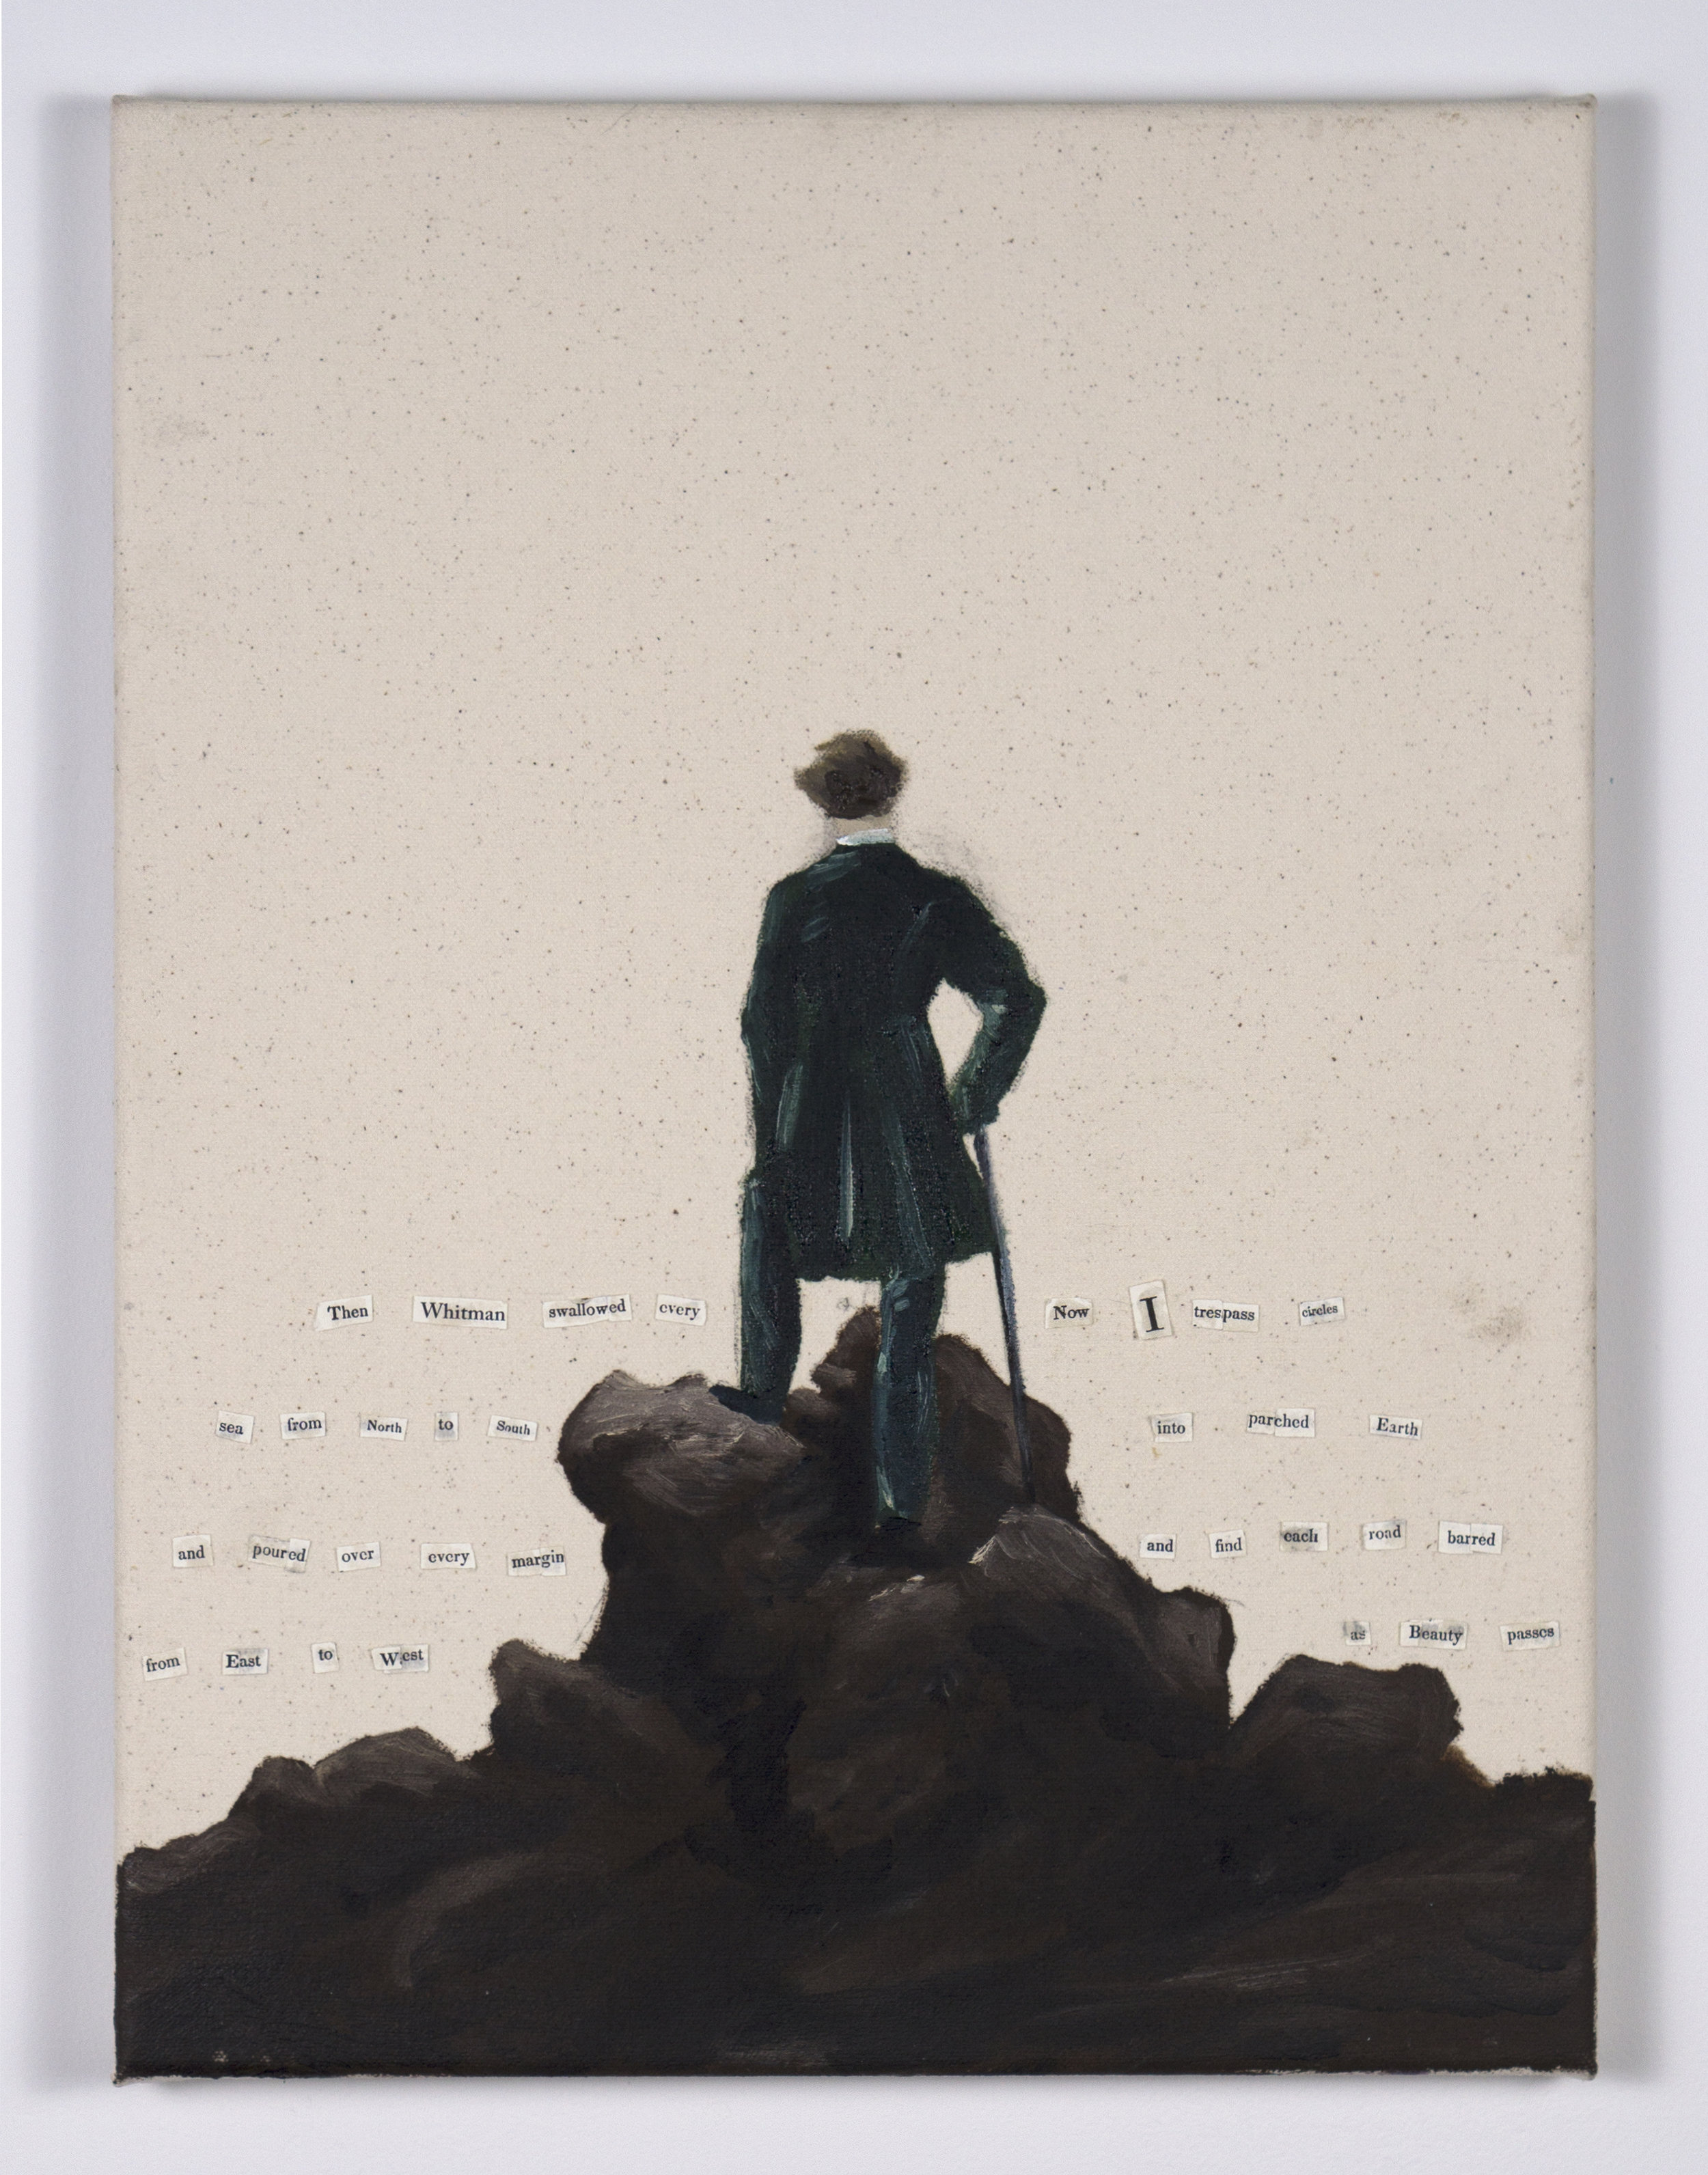 The Wanderer - After Friedrich and Whitman